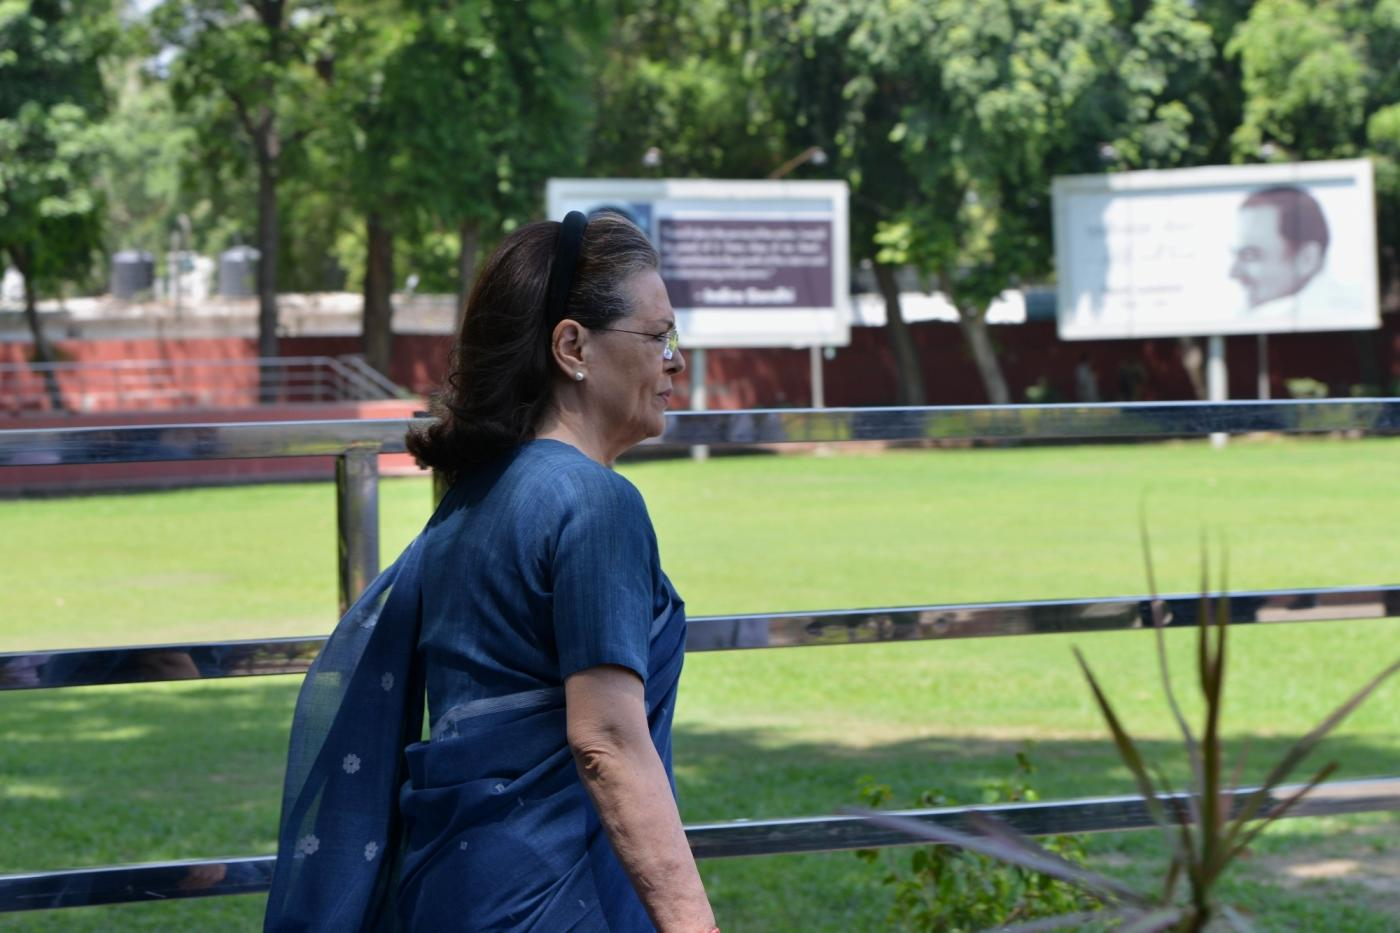 New Delhi: UPA Chairperson Sonia Gandhi arrives to attend the Congress Working Committee (CWC) meeting at the party's headquarters in New Delhi, on May 25, 2019. (Photo: IANS) by .